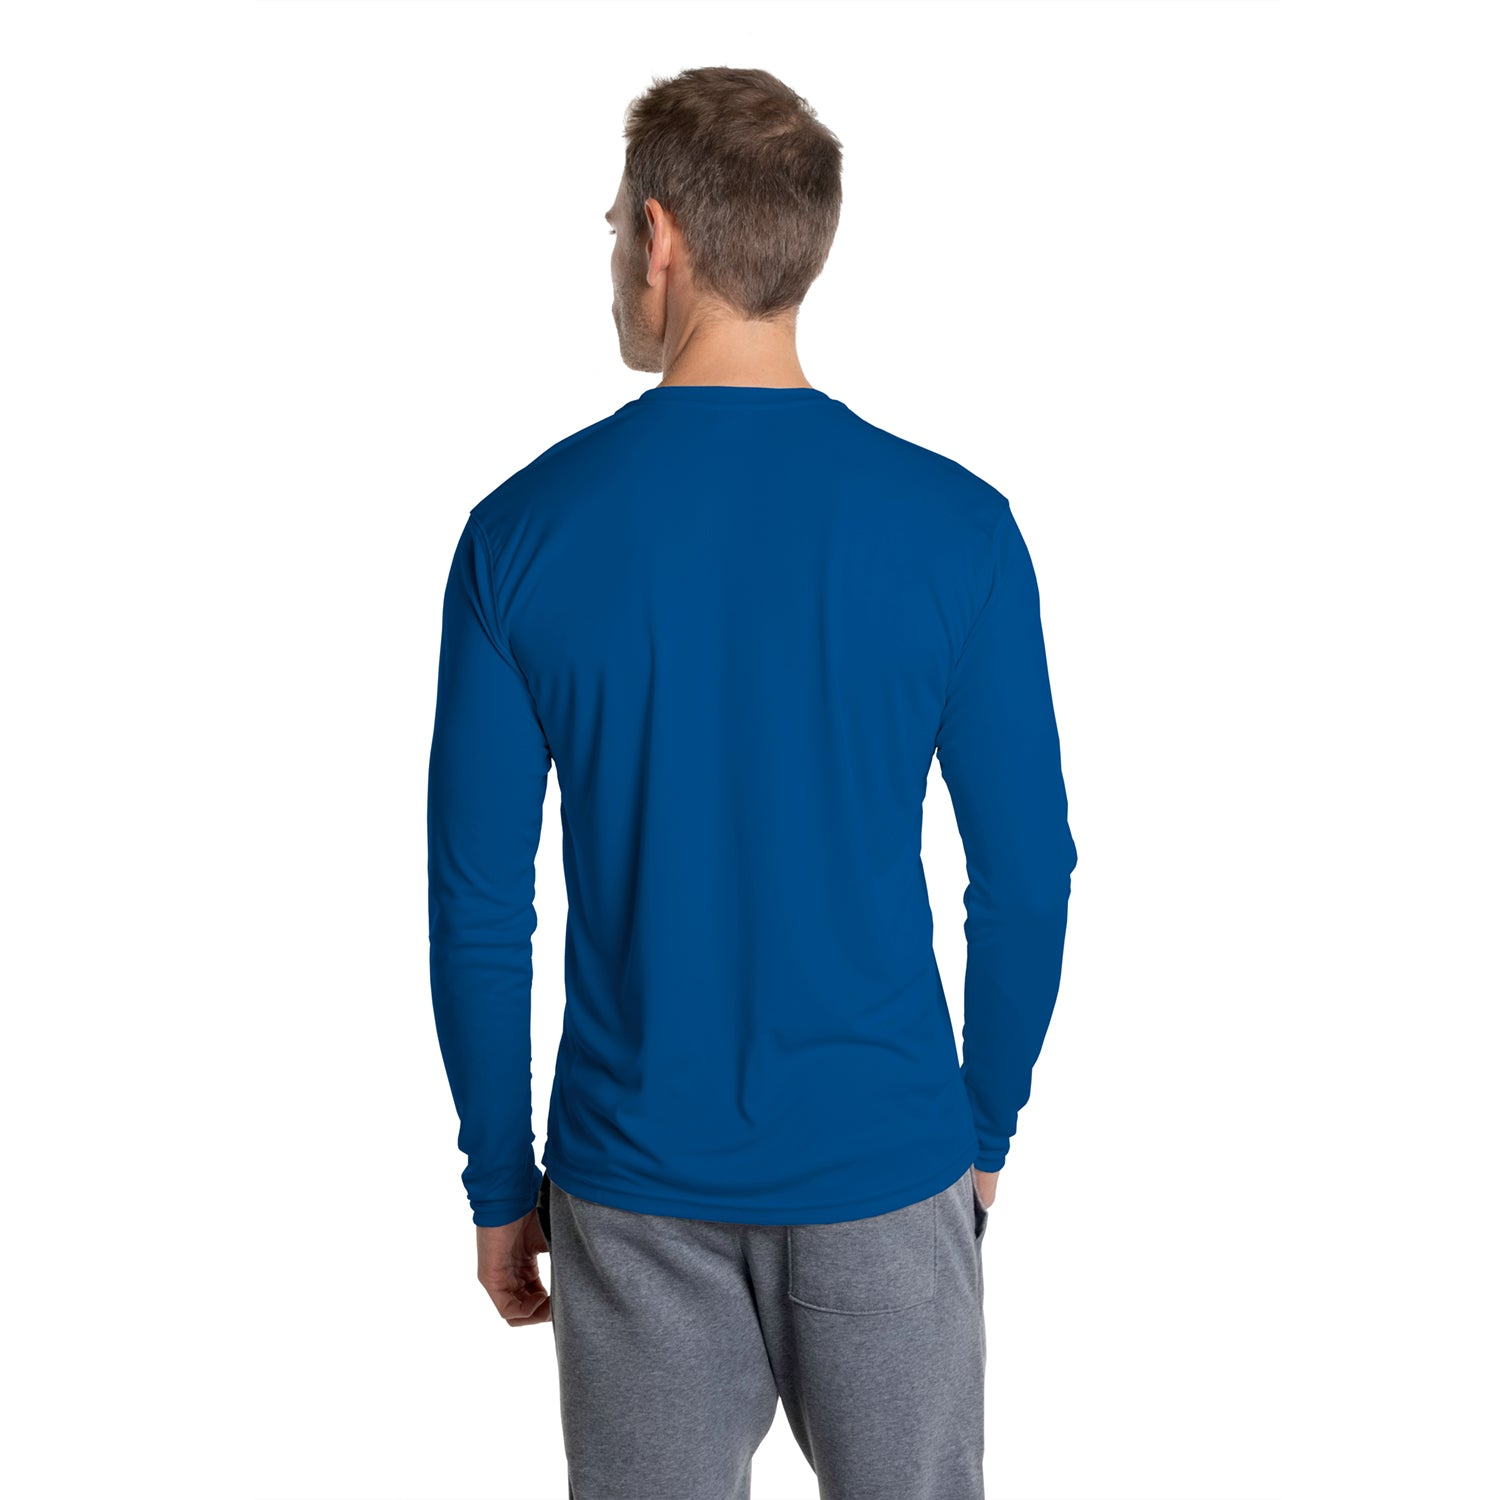 R710RB Solar Repreve® Long Sleeve - Royal Blue